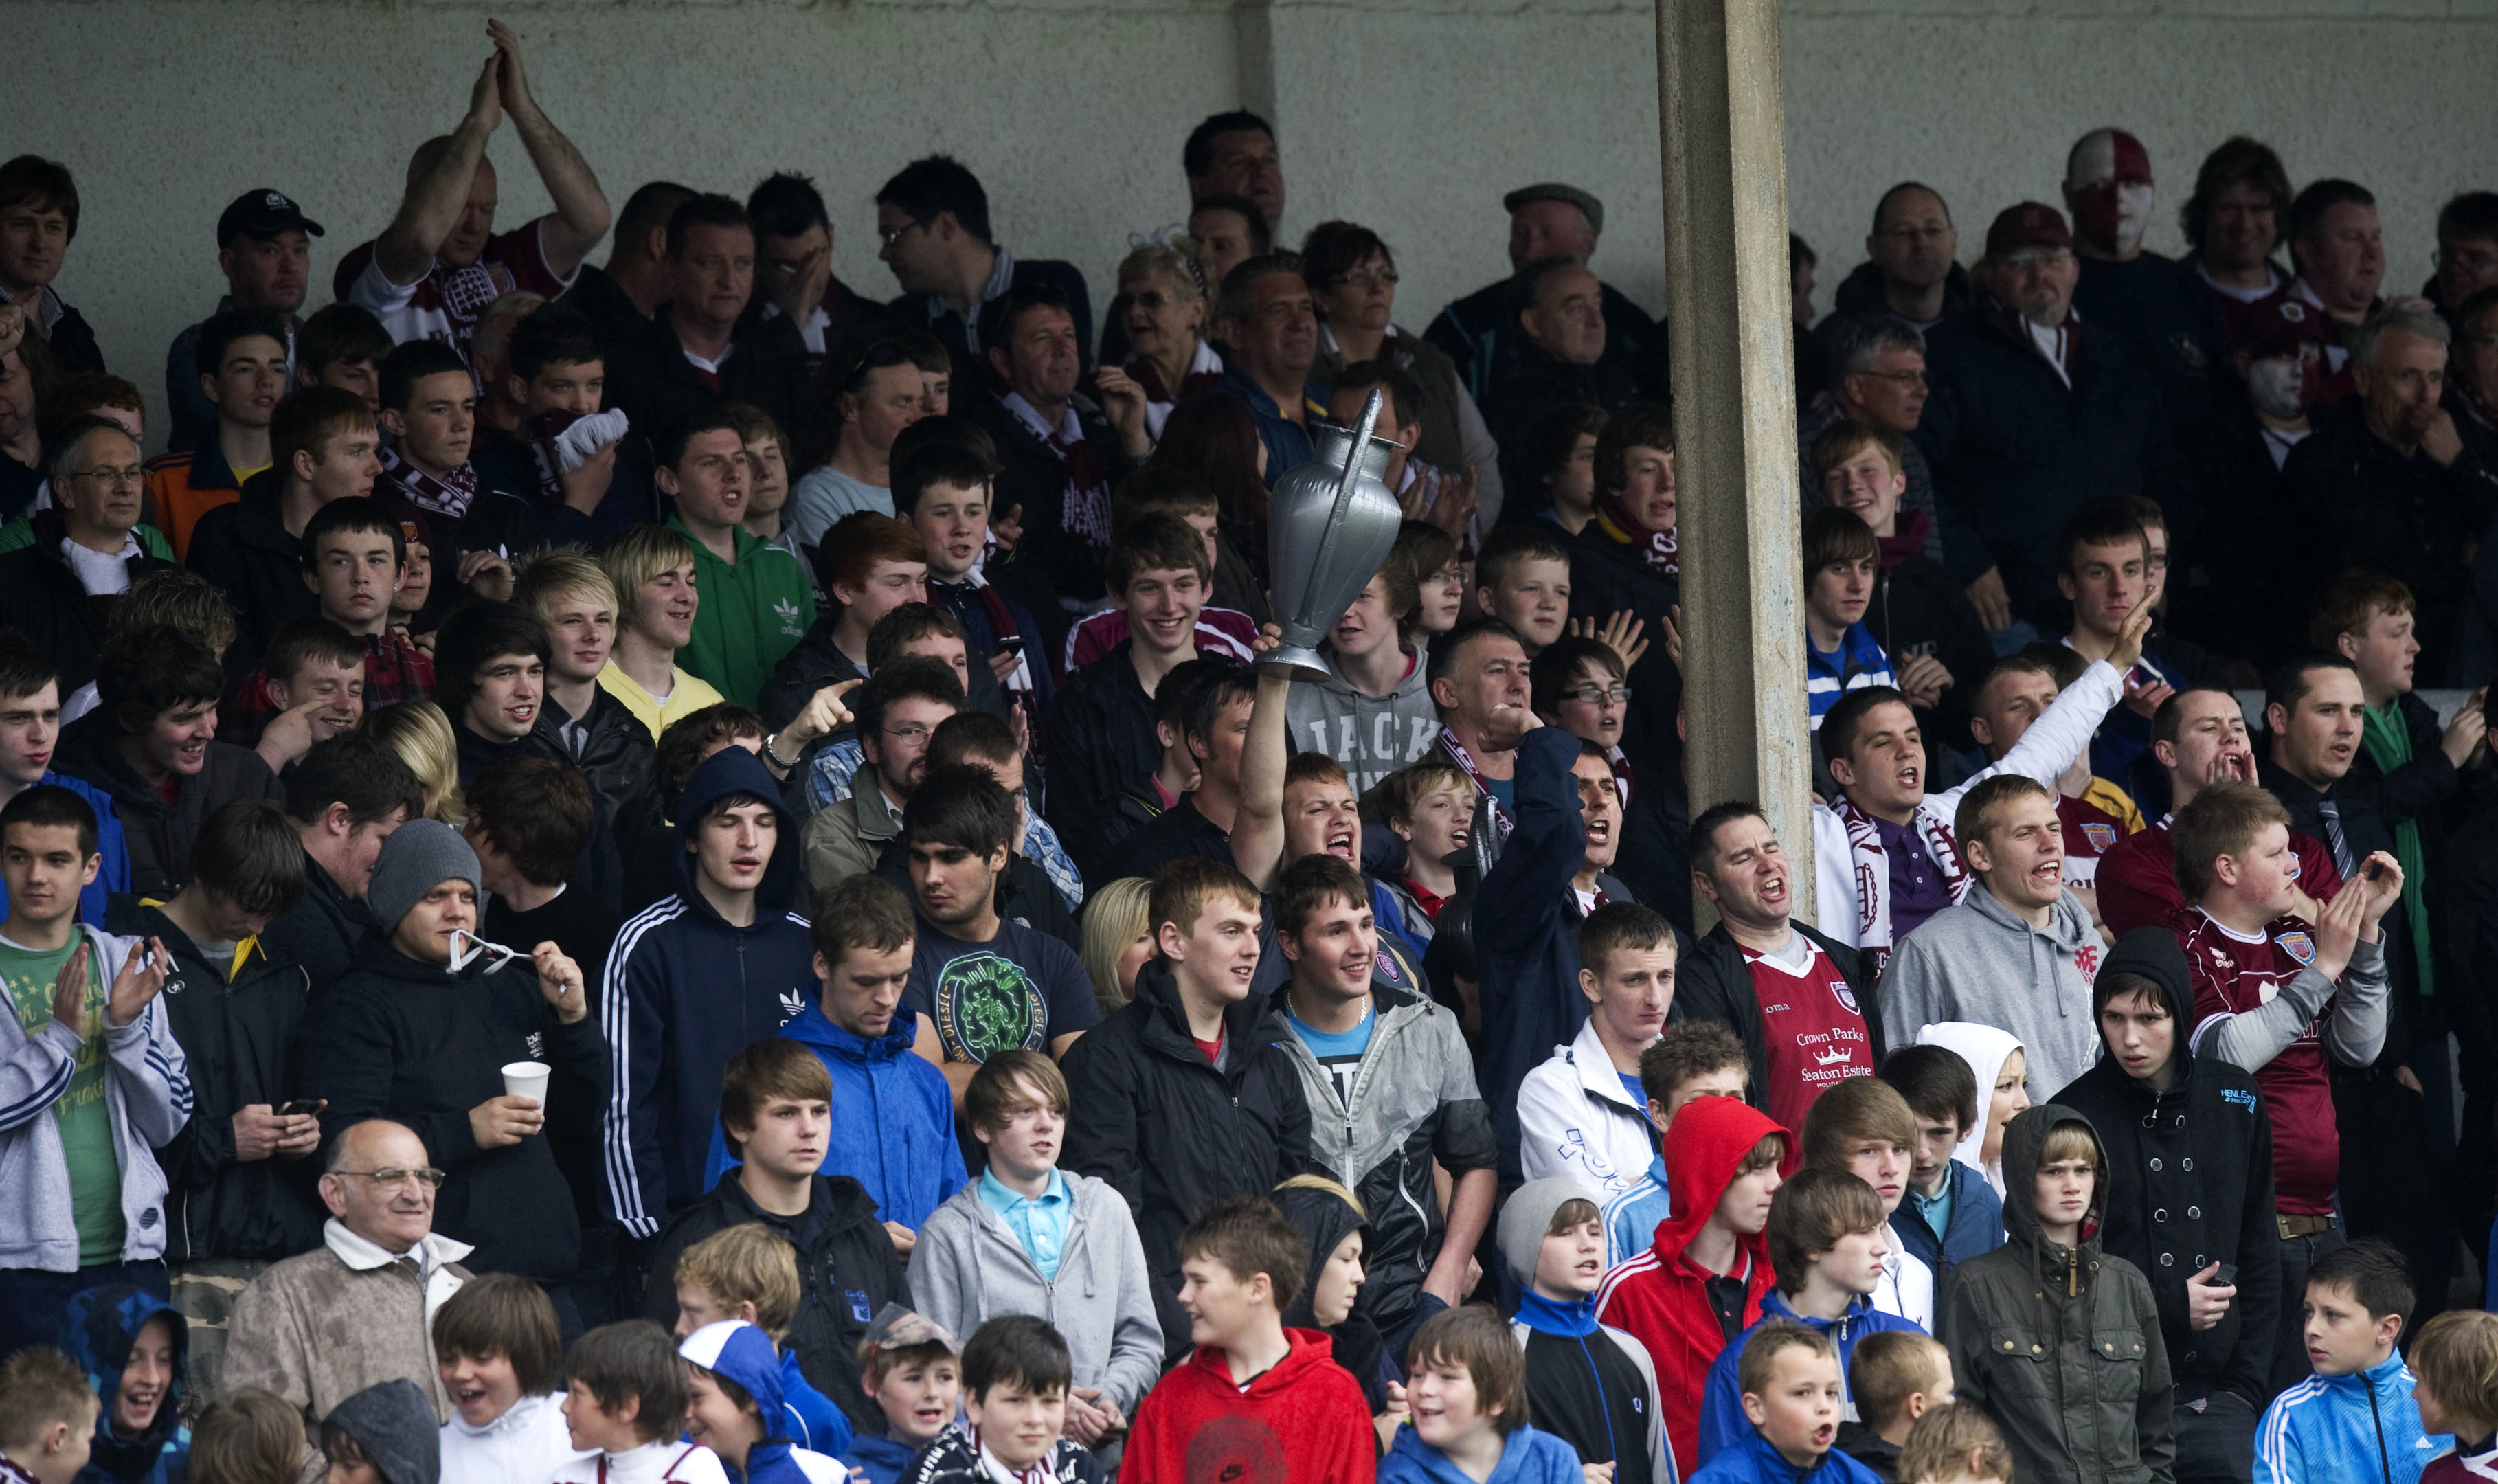 Arbroath fans at a derby against Montrose.